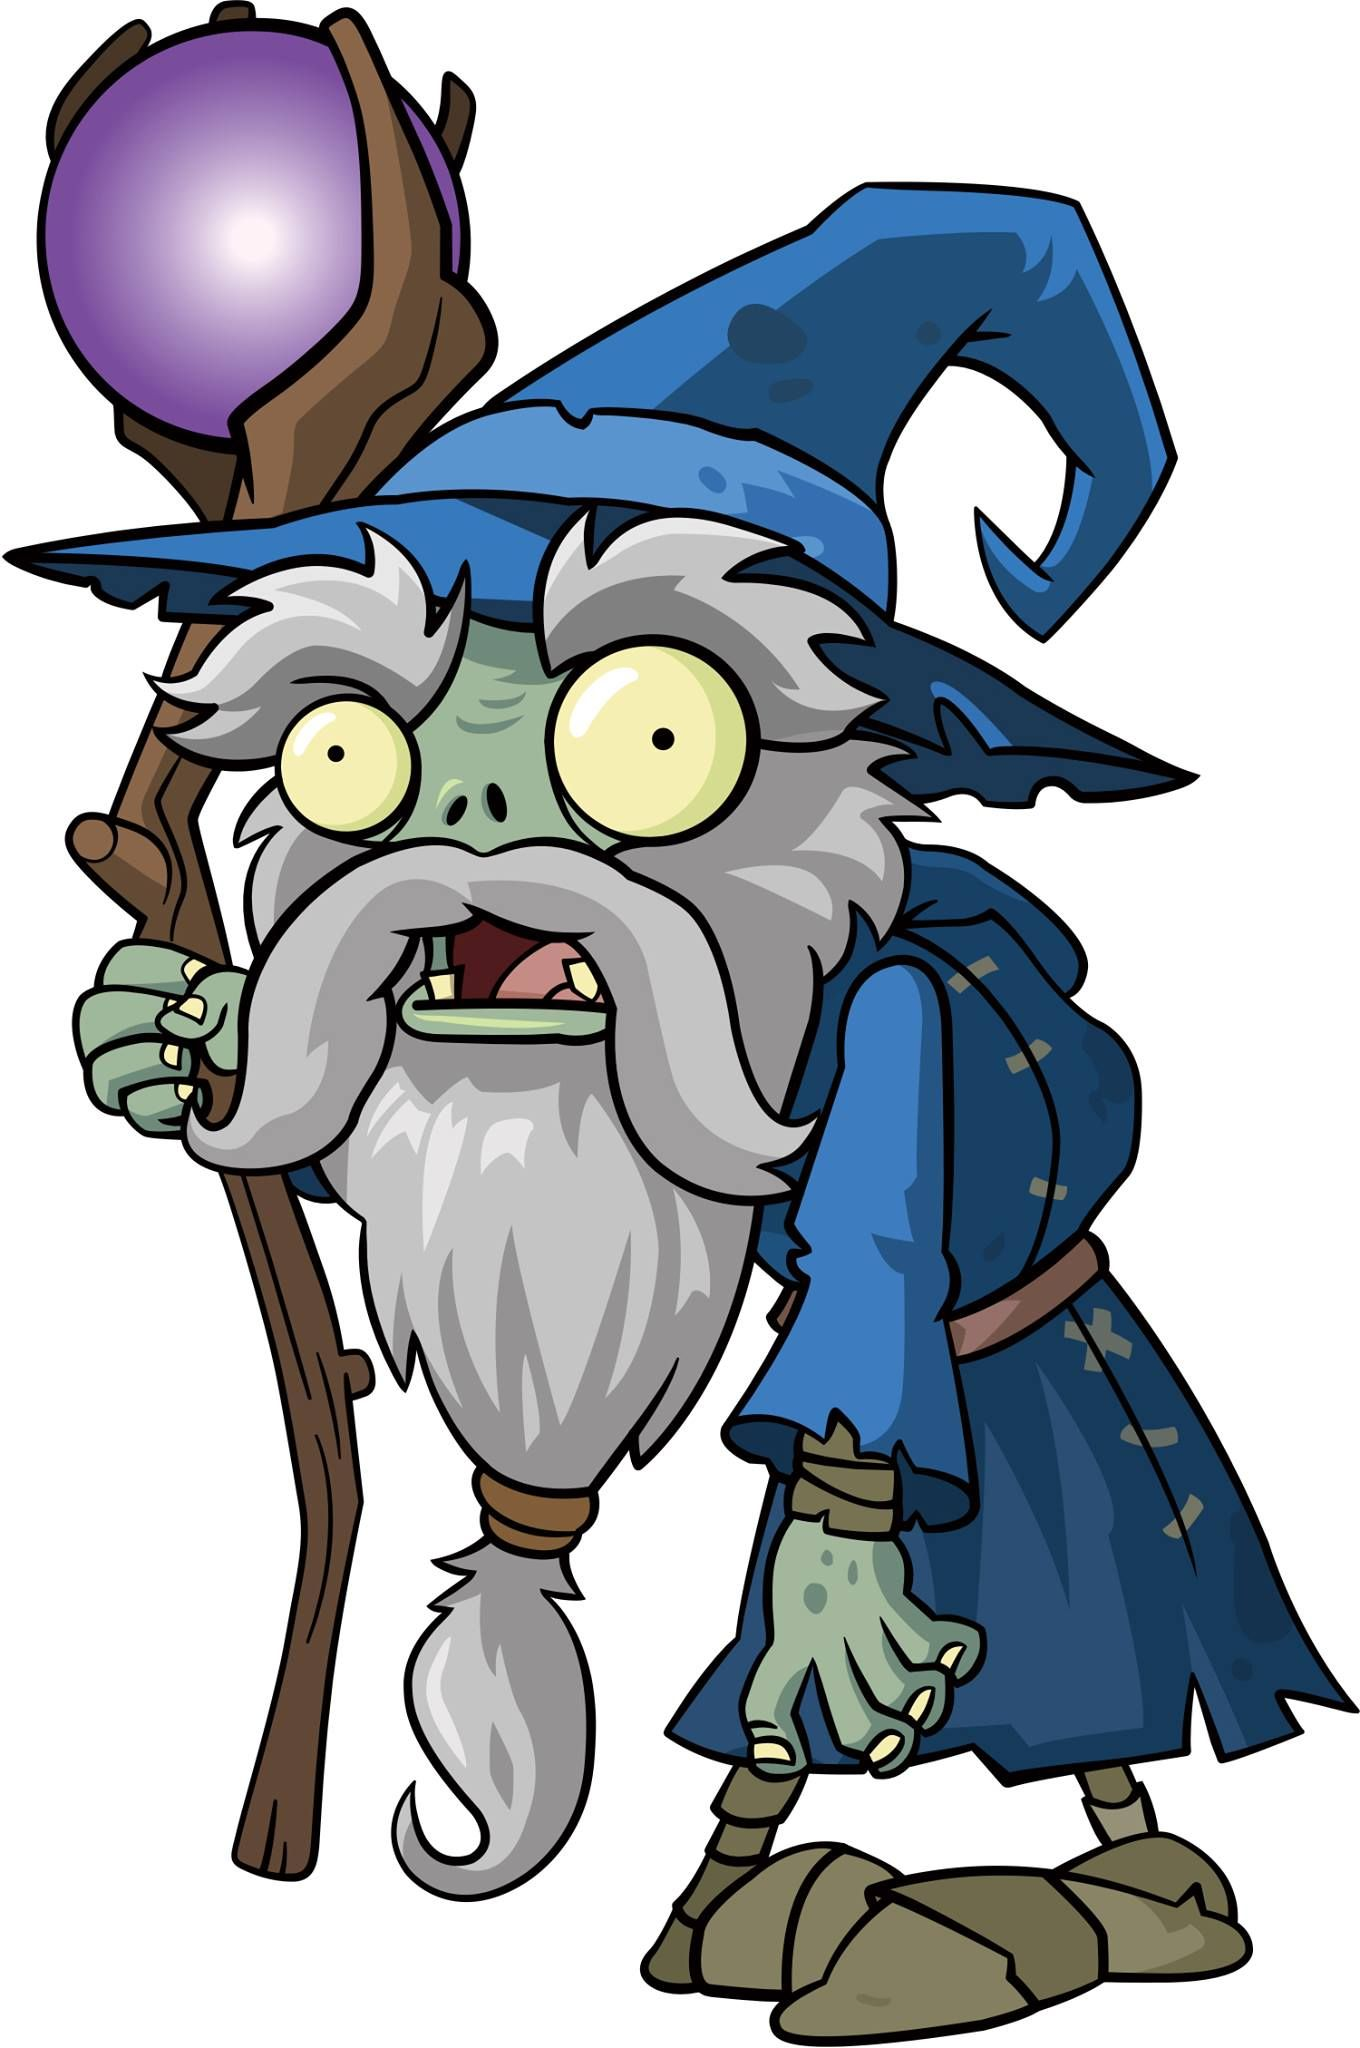 Plants Vs Zombies 2 Zombie Characters Google Search Albert